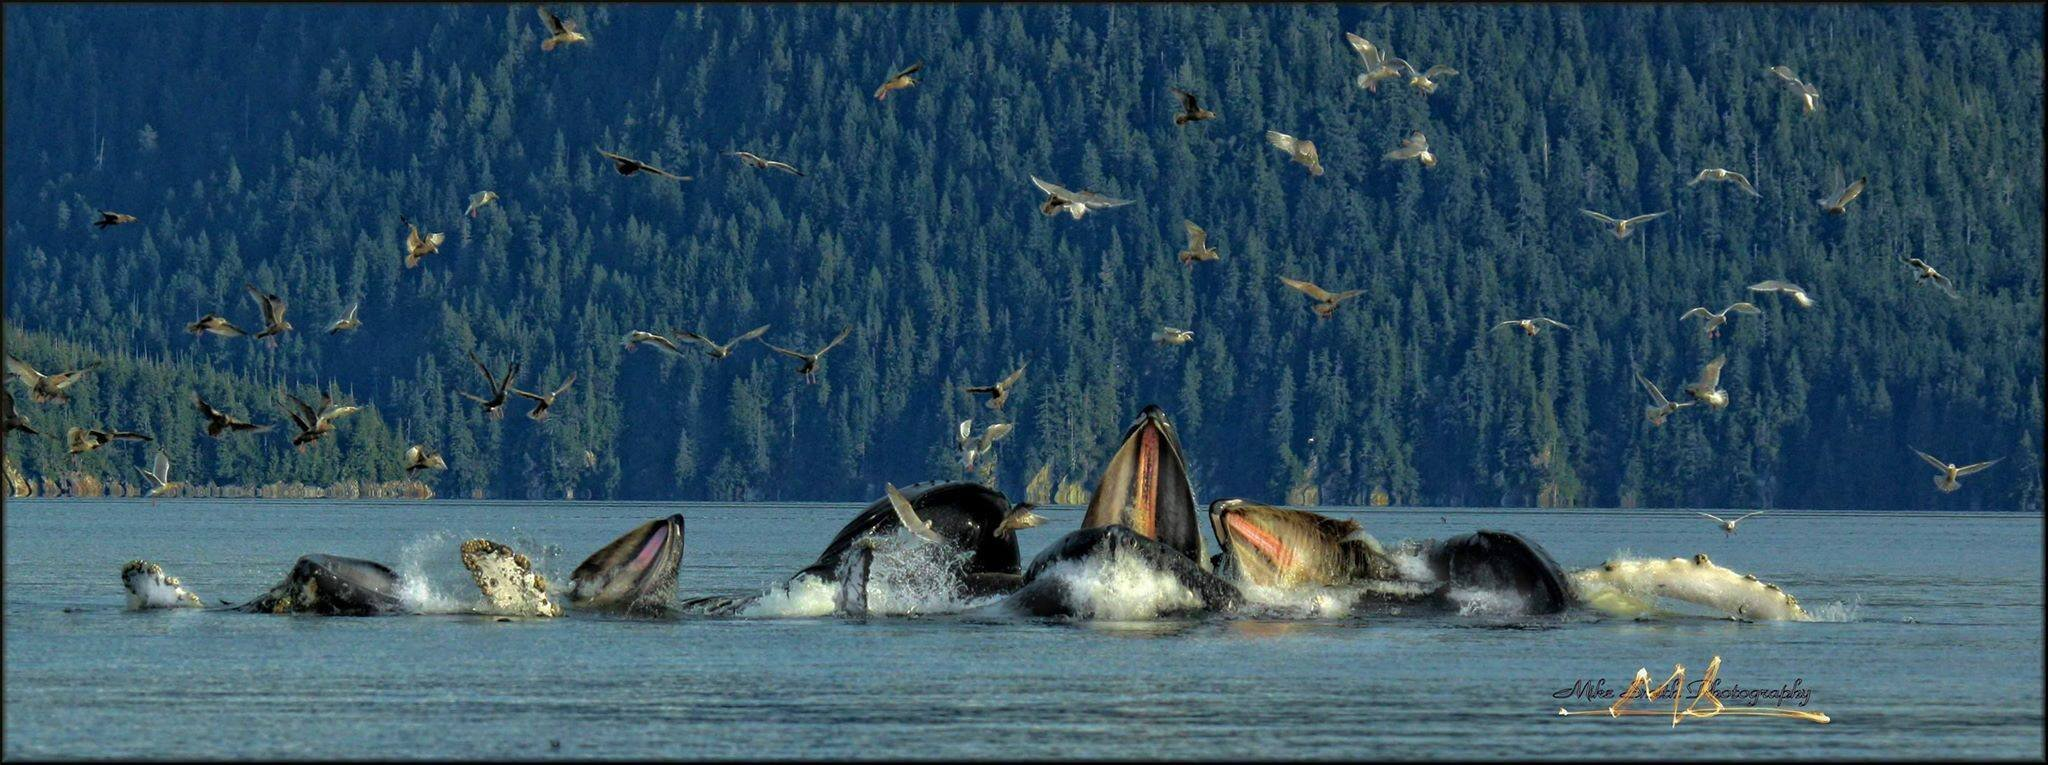 BUBBLE-NET FEEDING HUMPBACK WHALES IN THE WATERS BETWEEN PRINCE OF WALES ISLAND AND KETCHIKAN, ALASKA. IMAGE: THANKS TO ©MIKE SMITH